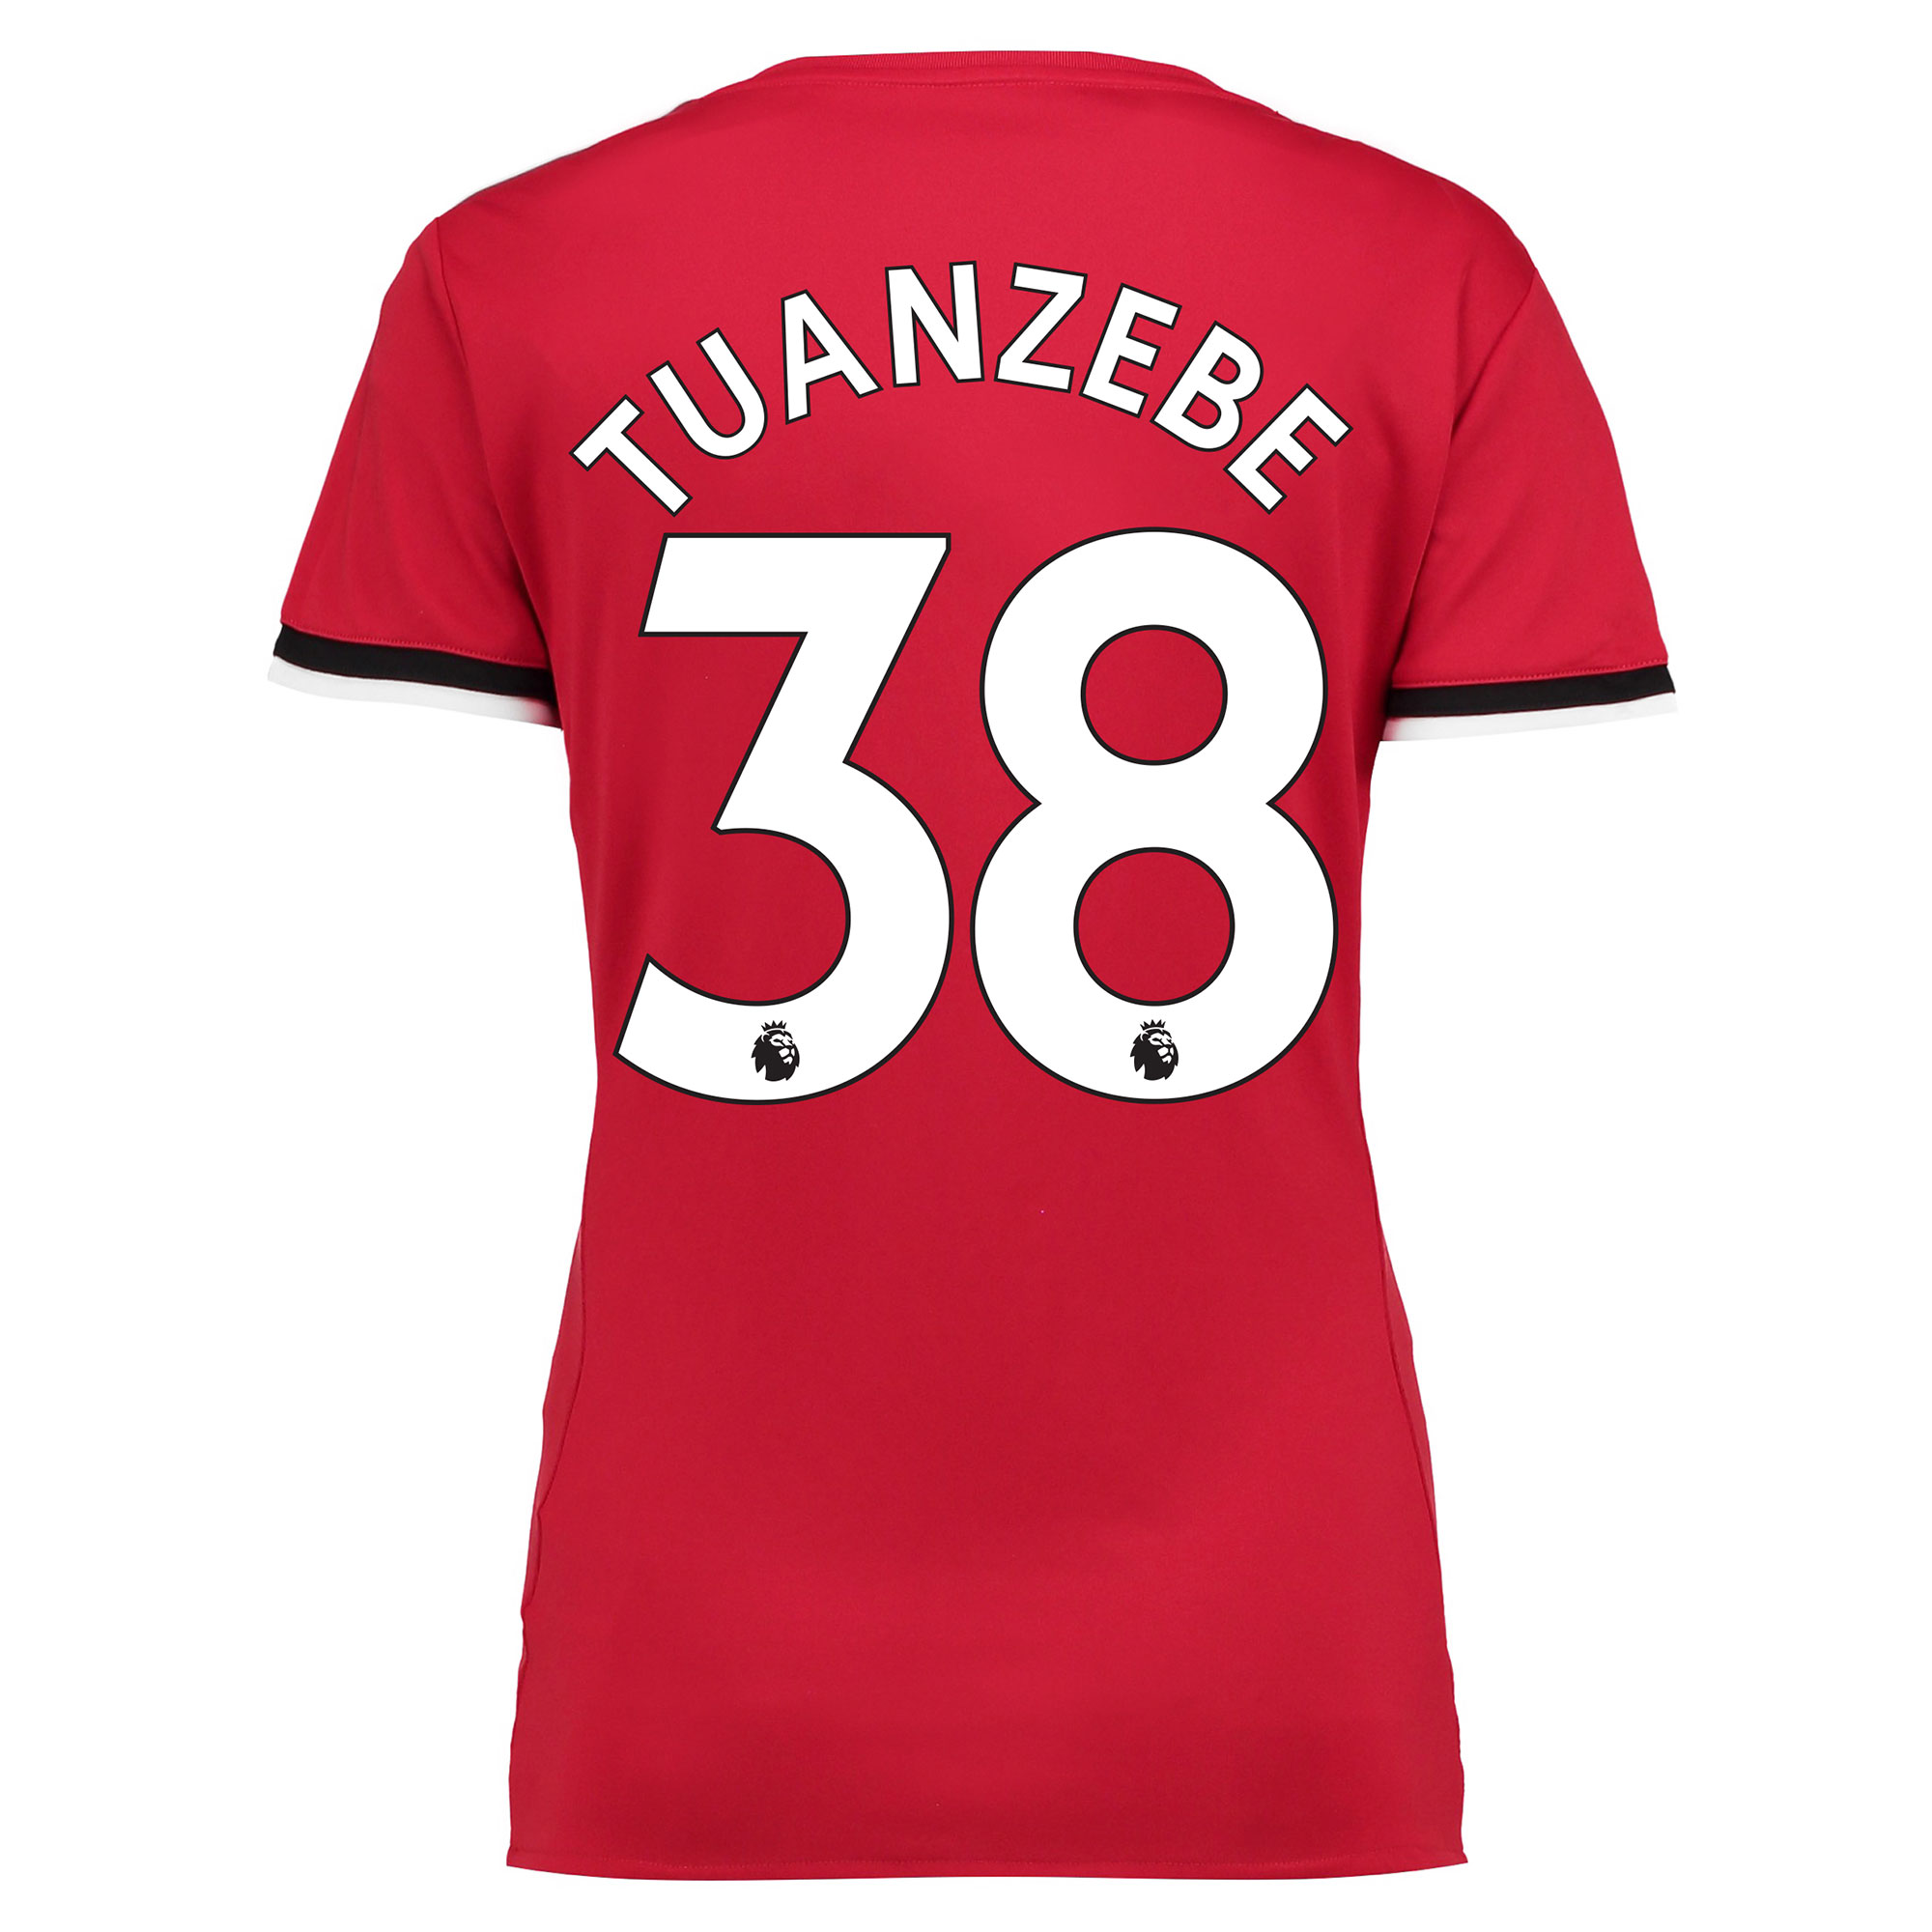 Manchester United Home Shirt 2017-18 - Womens with Tuanzebe 38 printin